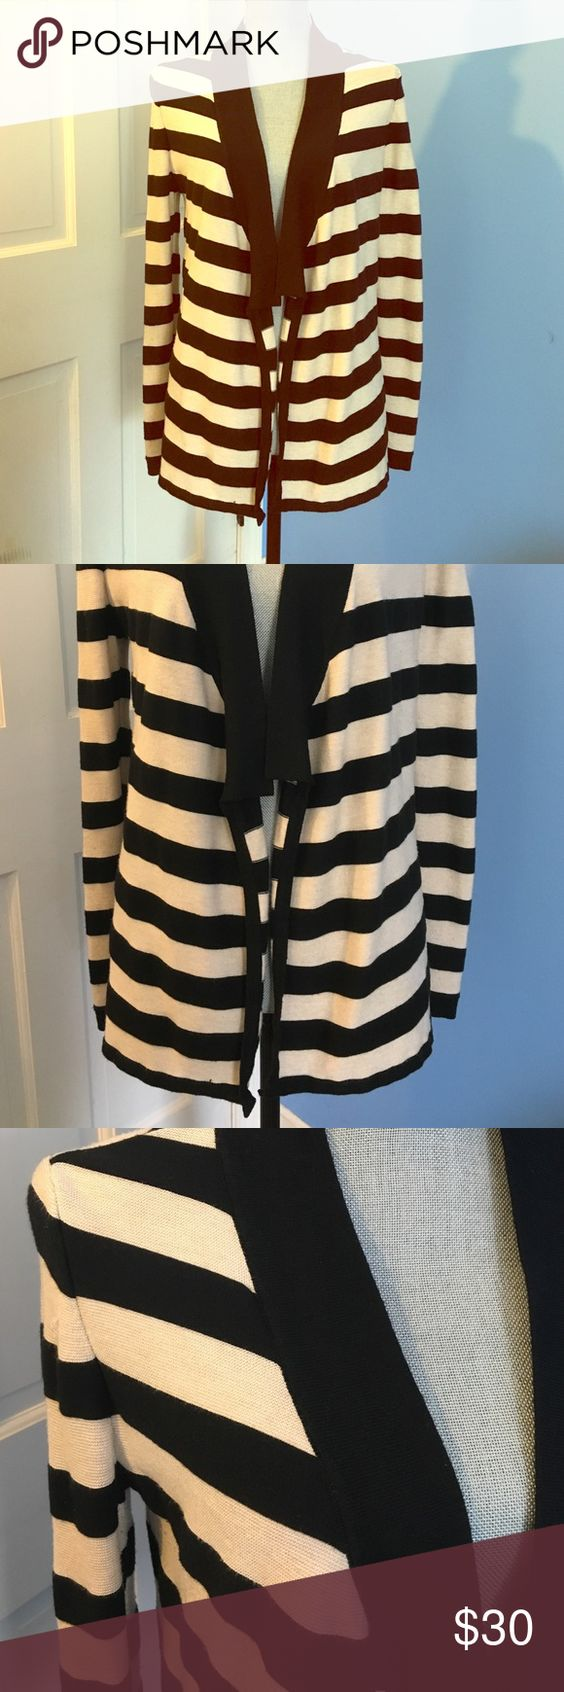 Tan and black striped open cardigan Tan and black striped cardigan, made to be left open, but I've also belted it with a skirt and boots. Stretchy, soft, and cozy in cool months. This is a great piece to have in the closet and is almost new. Great condition. White House Black Market Sweaters Cardigans